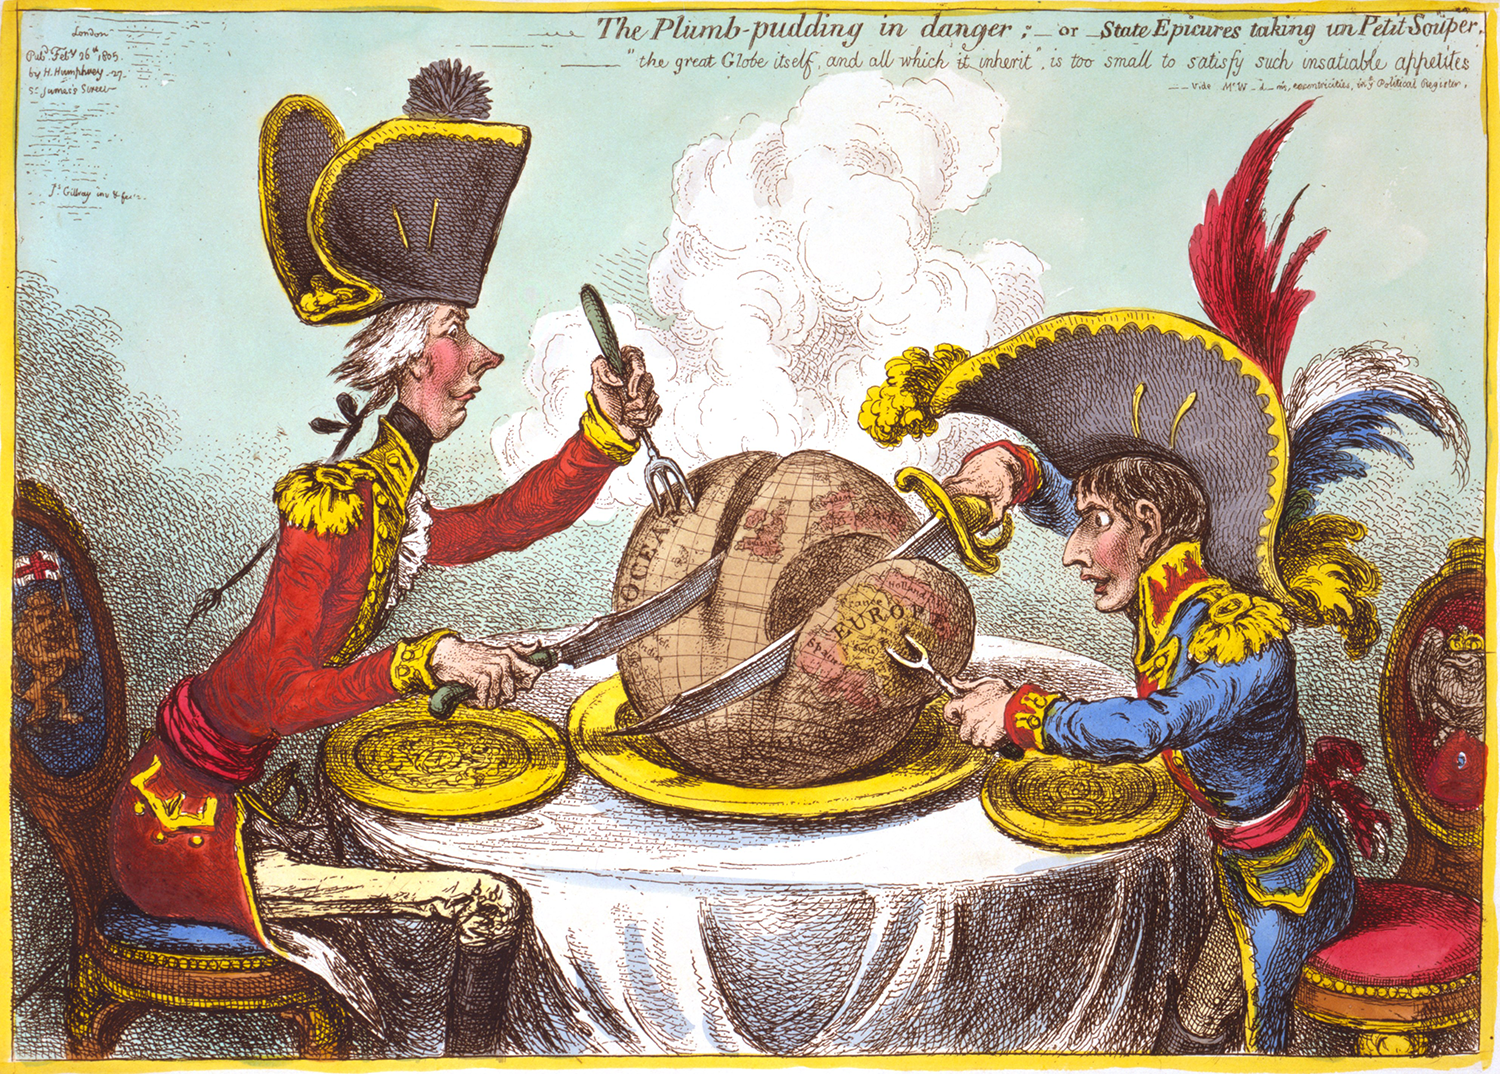 James Gillray, The Plumb-pudding in danger; or State Epicures taking un Petit Souper